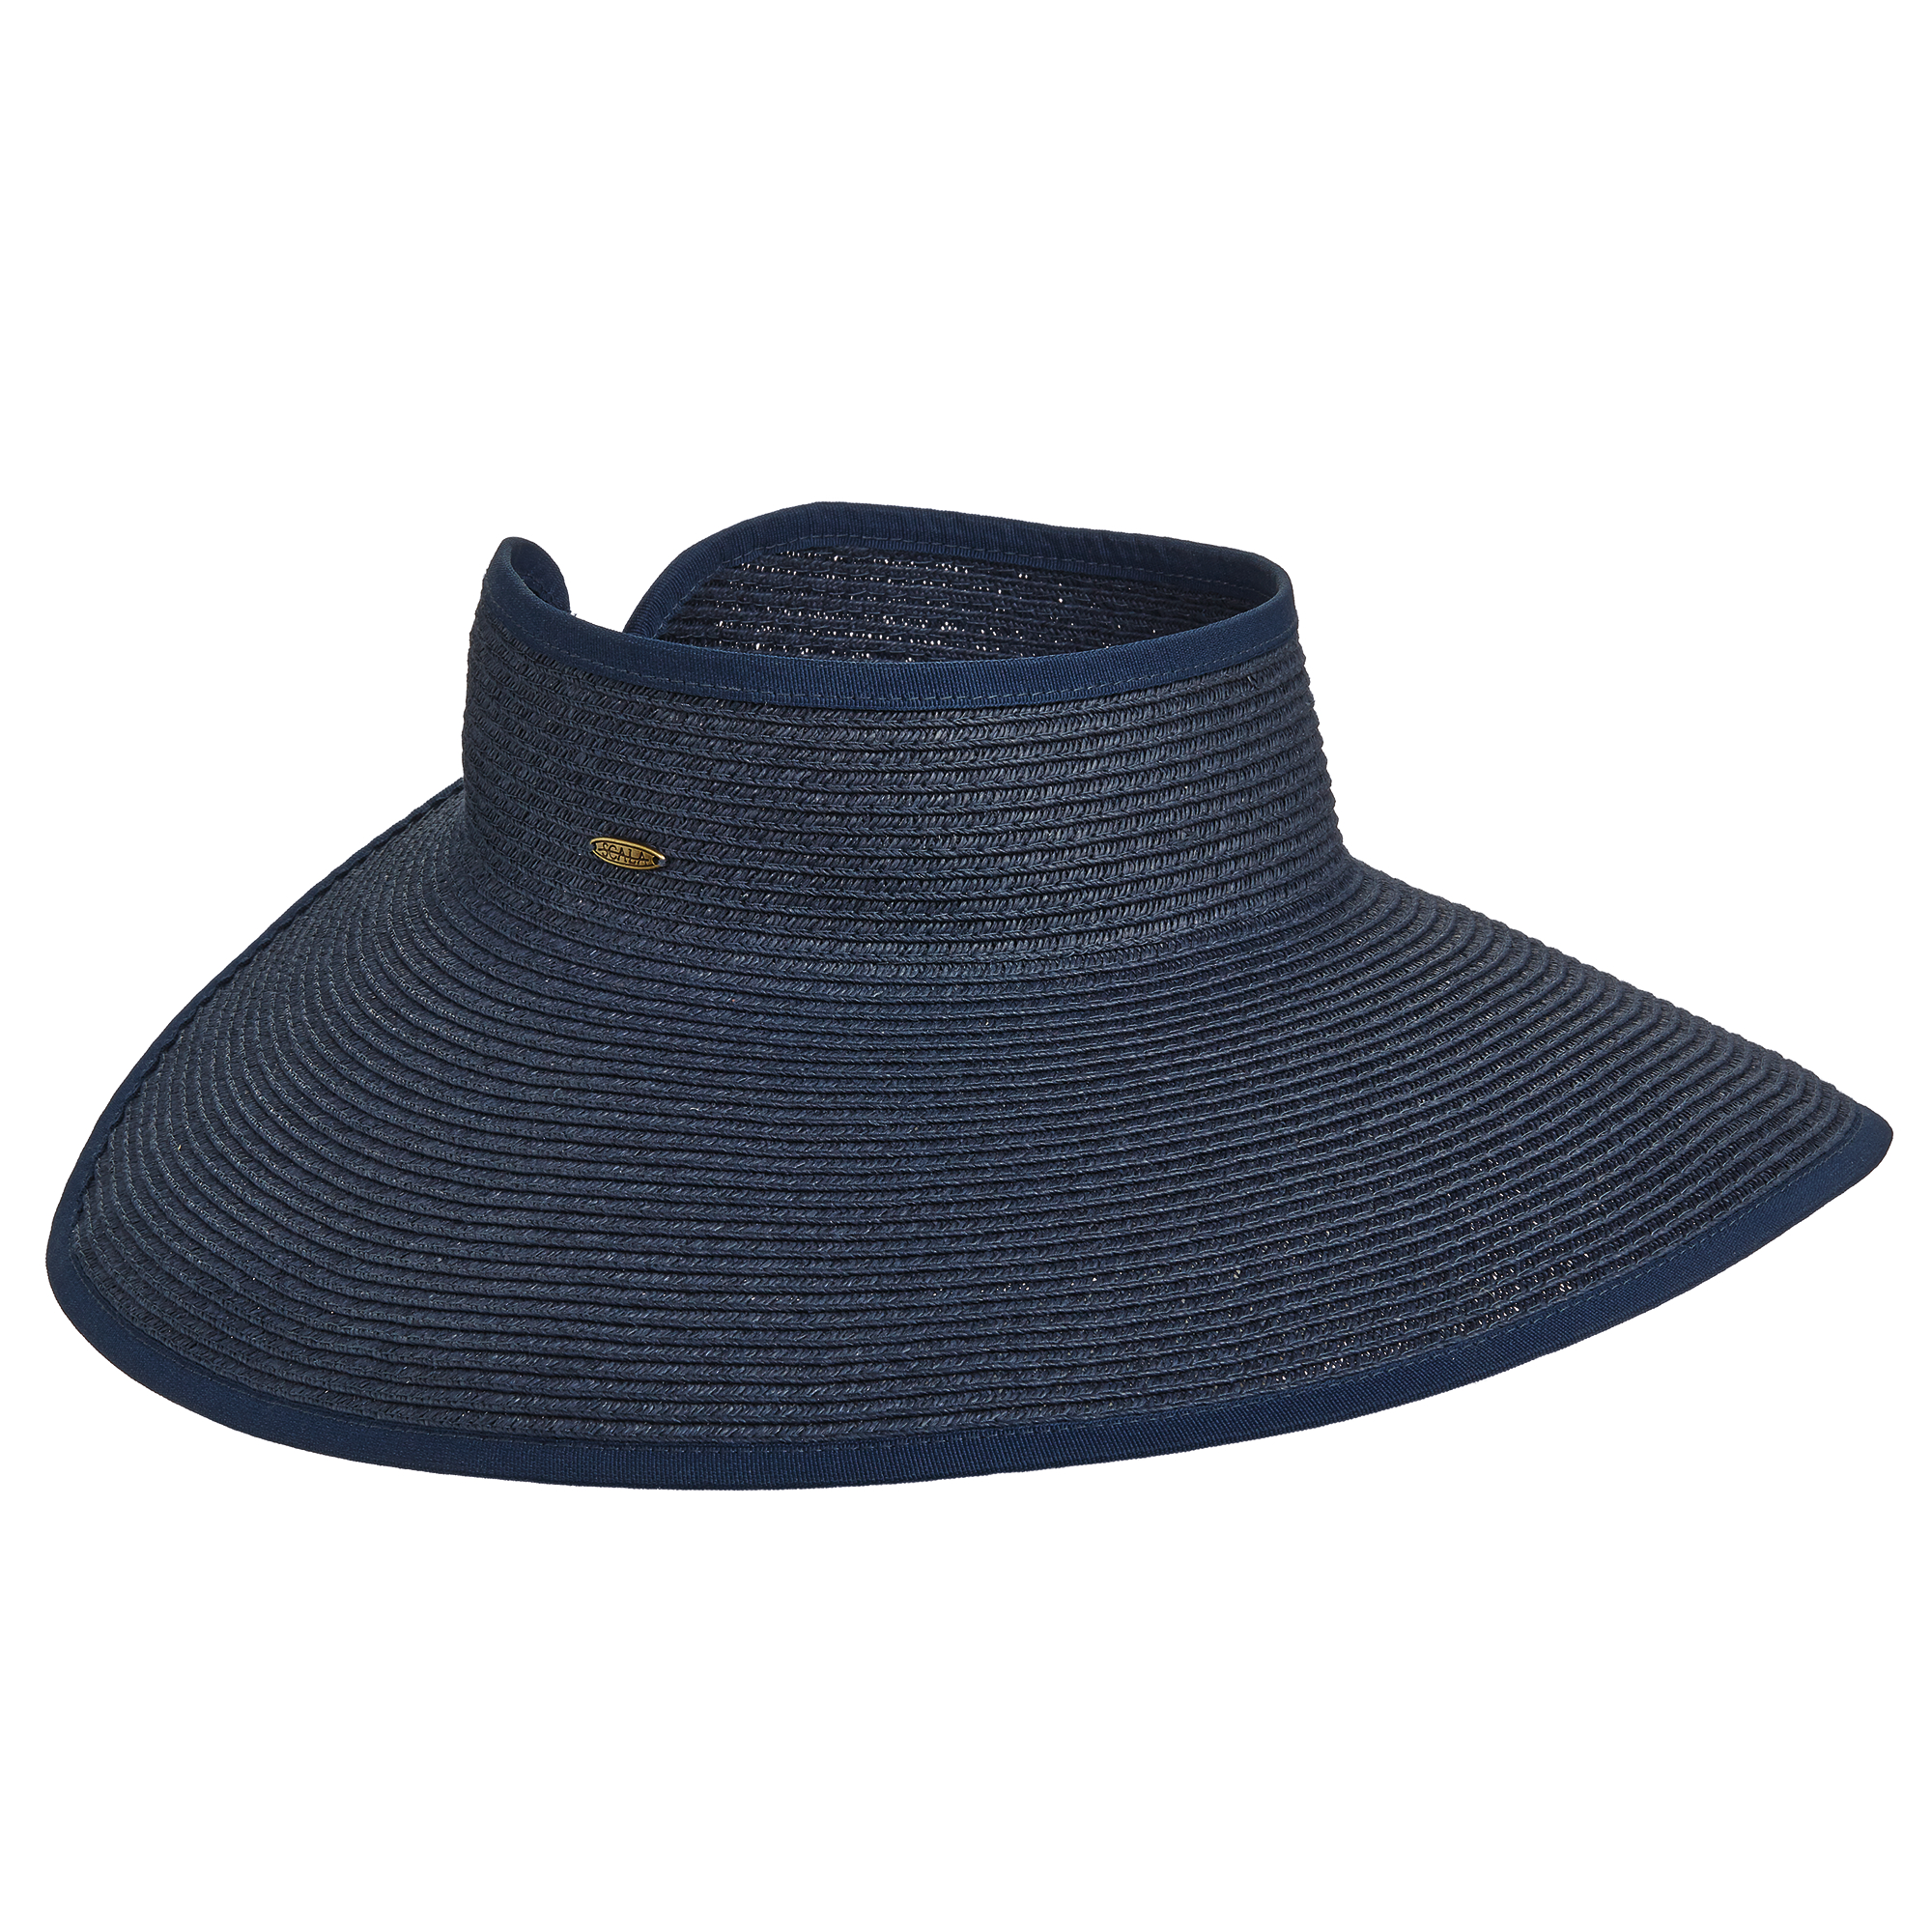 dorfman pacific rolls out a new Here come the deals 45% off on dorfman pacific women's packable roll sun visor hat right now don't miss this new low price.